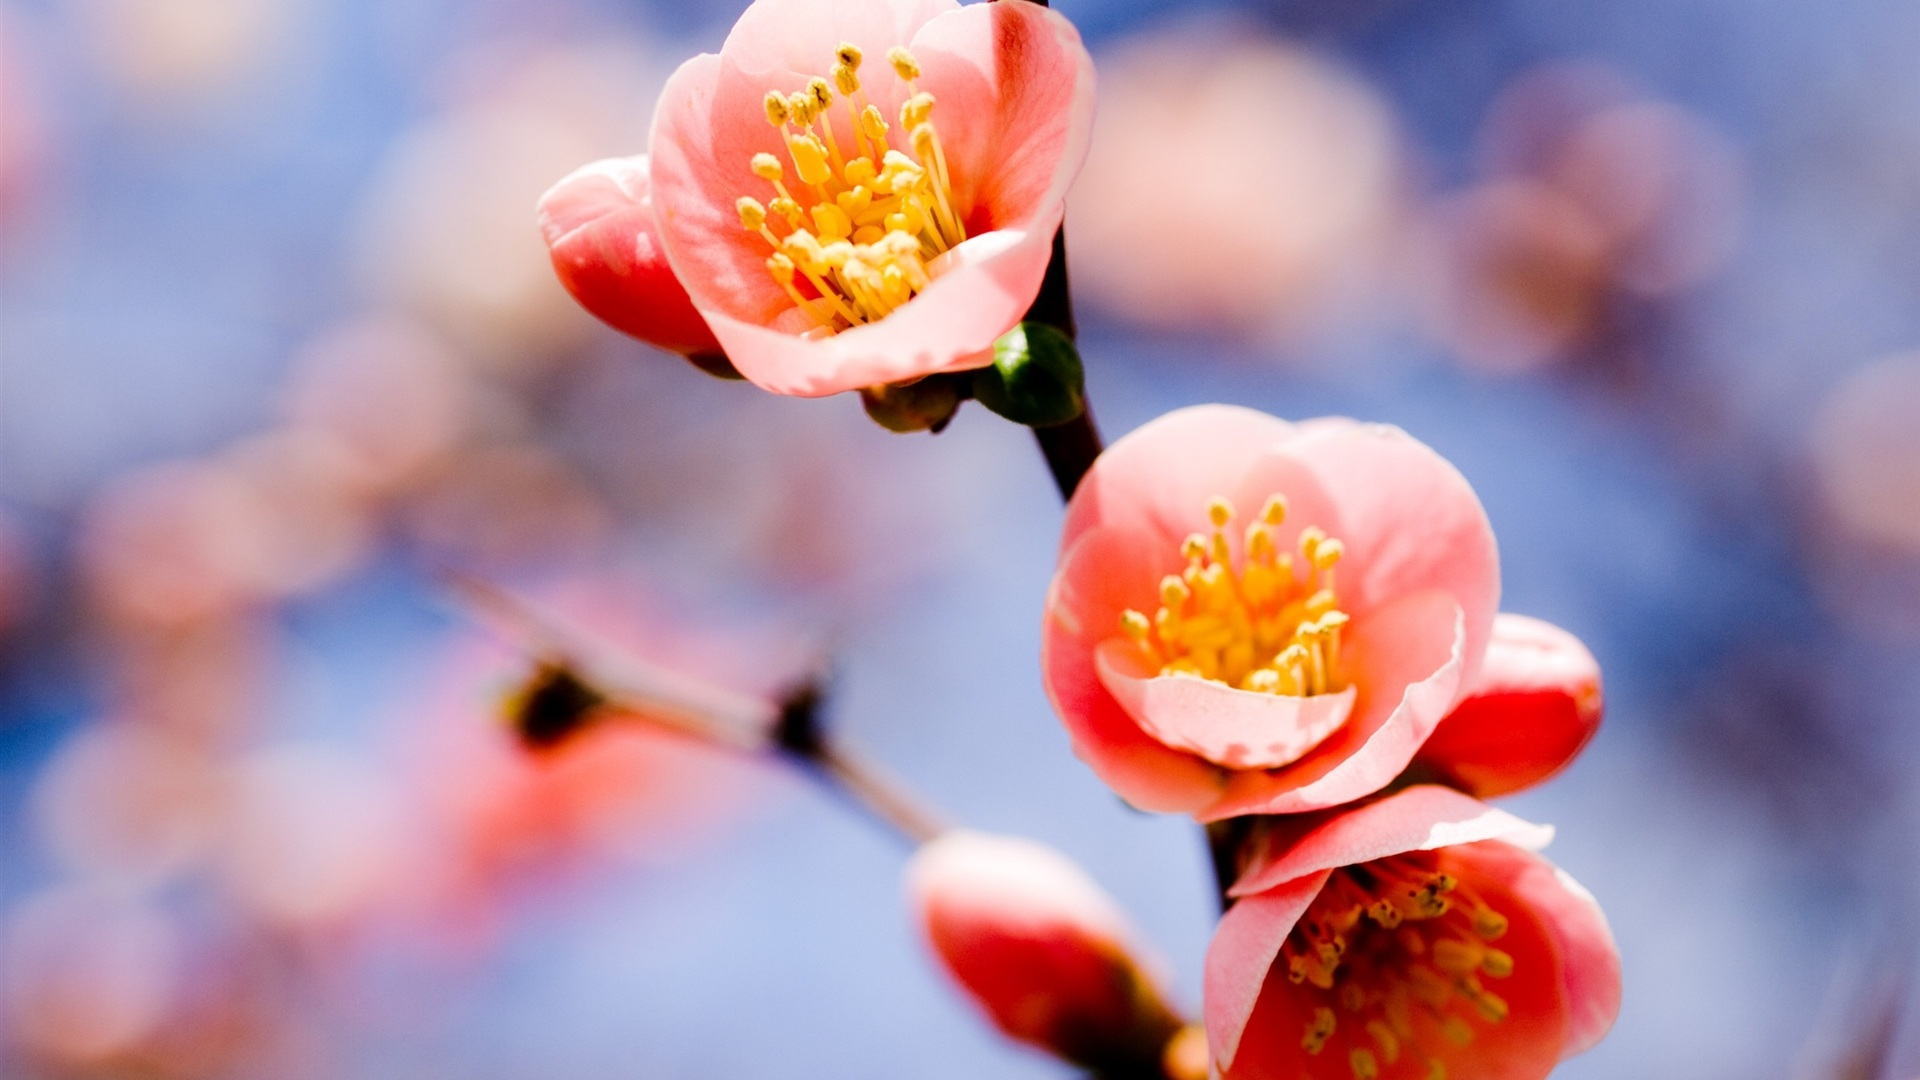 Iphone 5 Backgrounds Pink 壁紙 赤い梅の花...